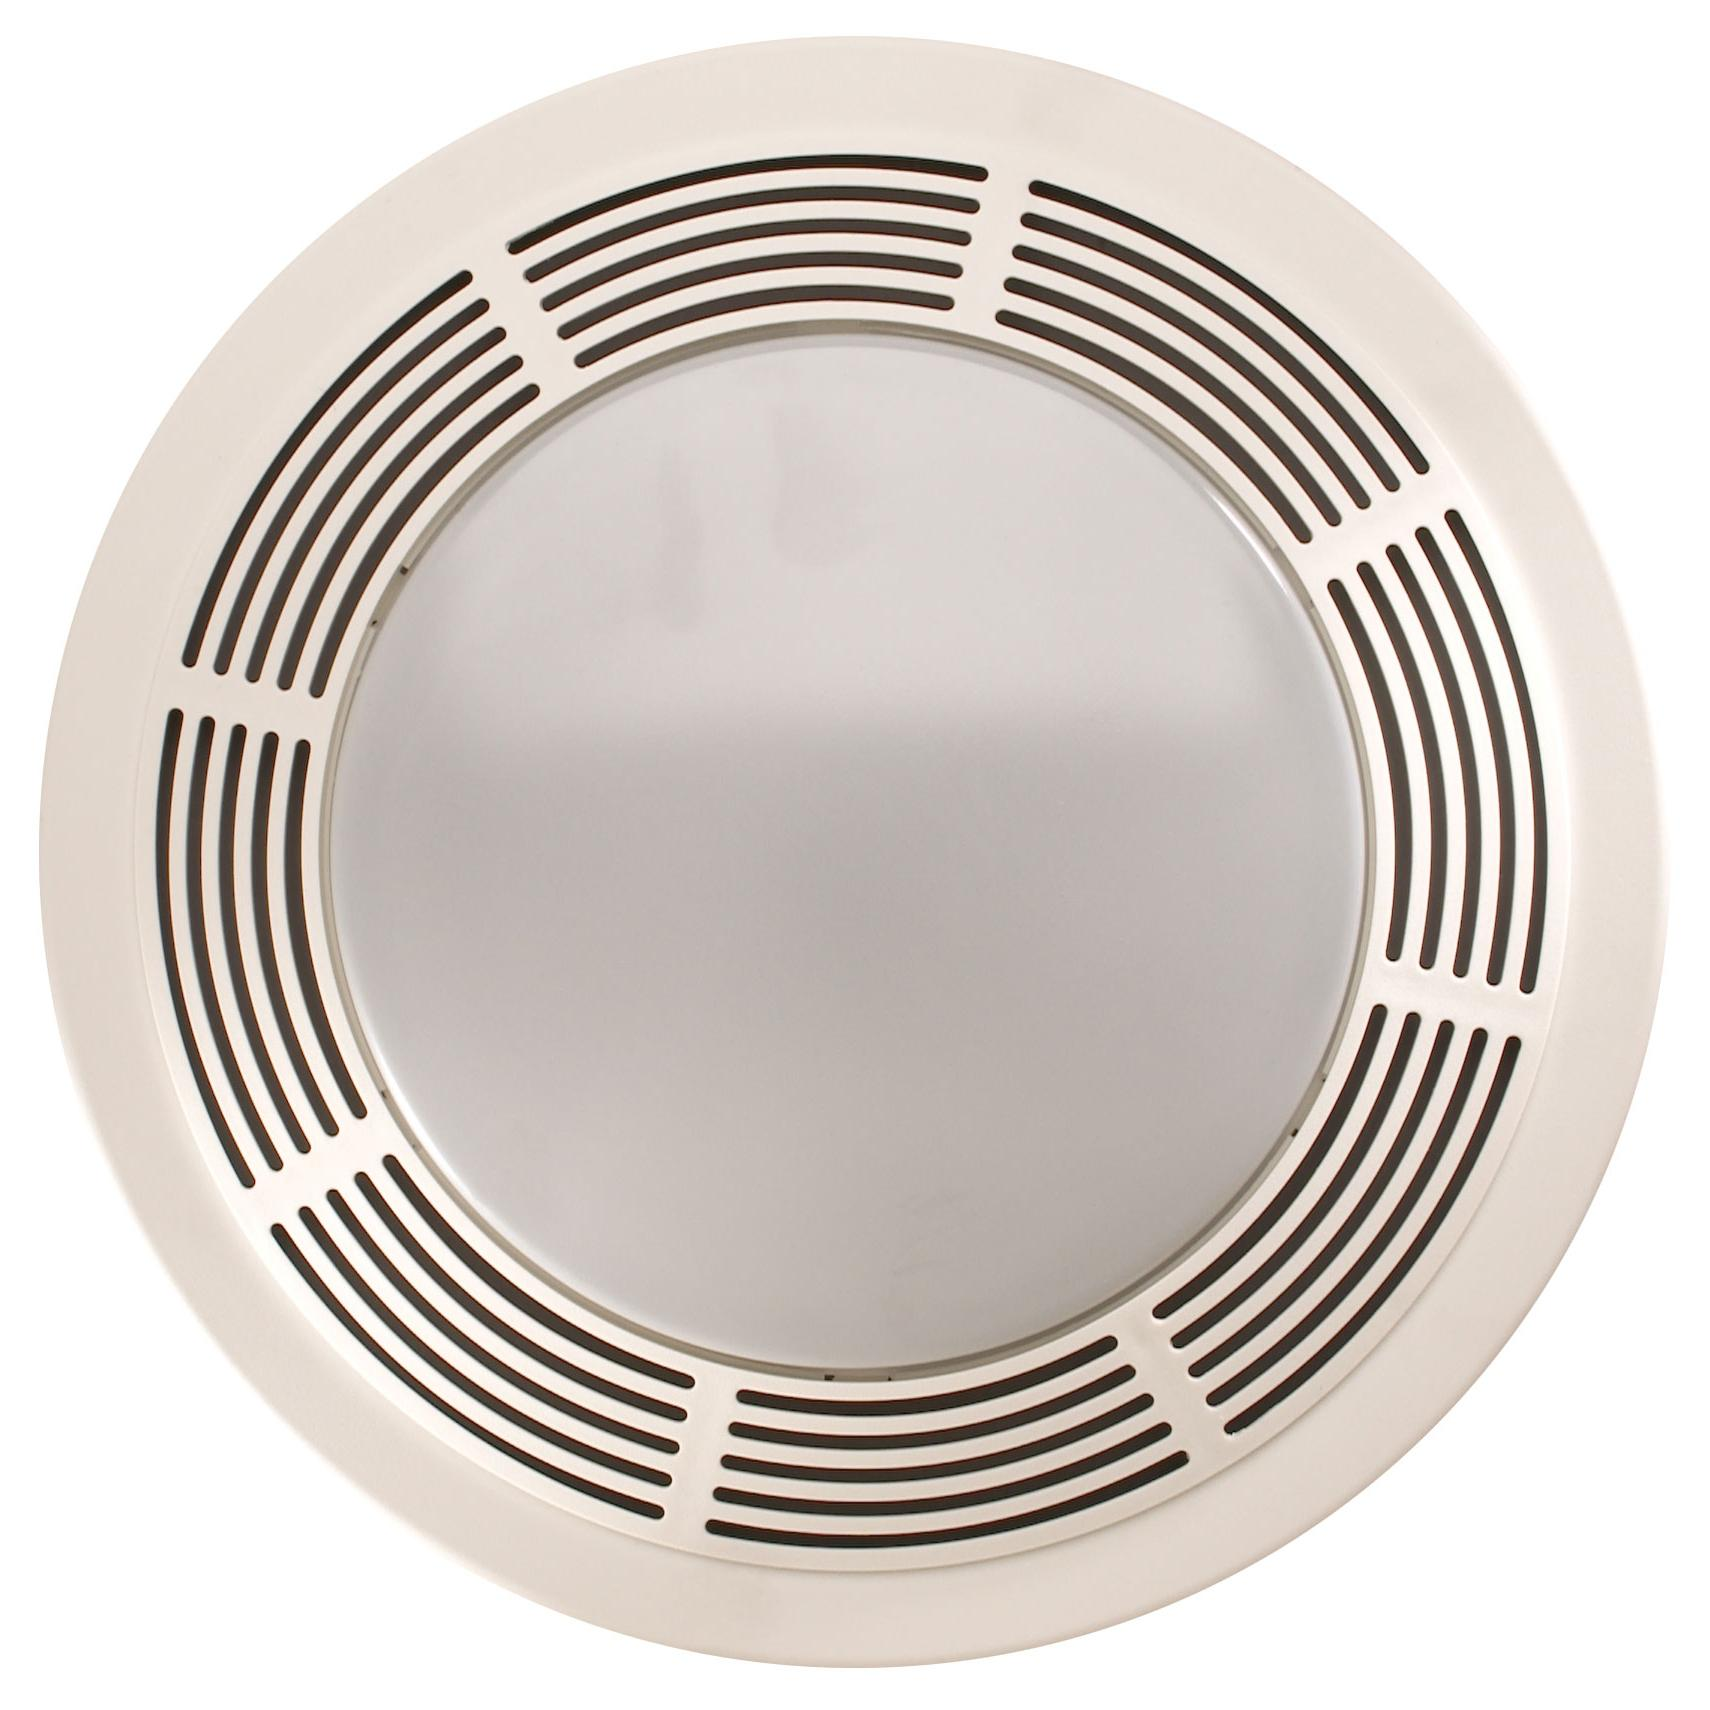 Nutone bathroom fan light replacement - Broan 750 Fan Light Night Light Round White Plastic Grille With Glass